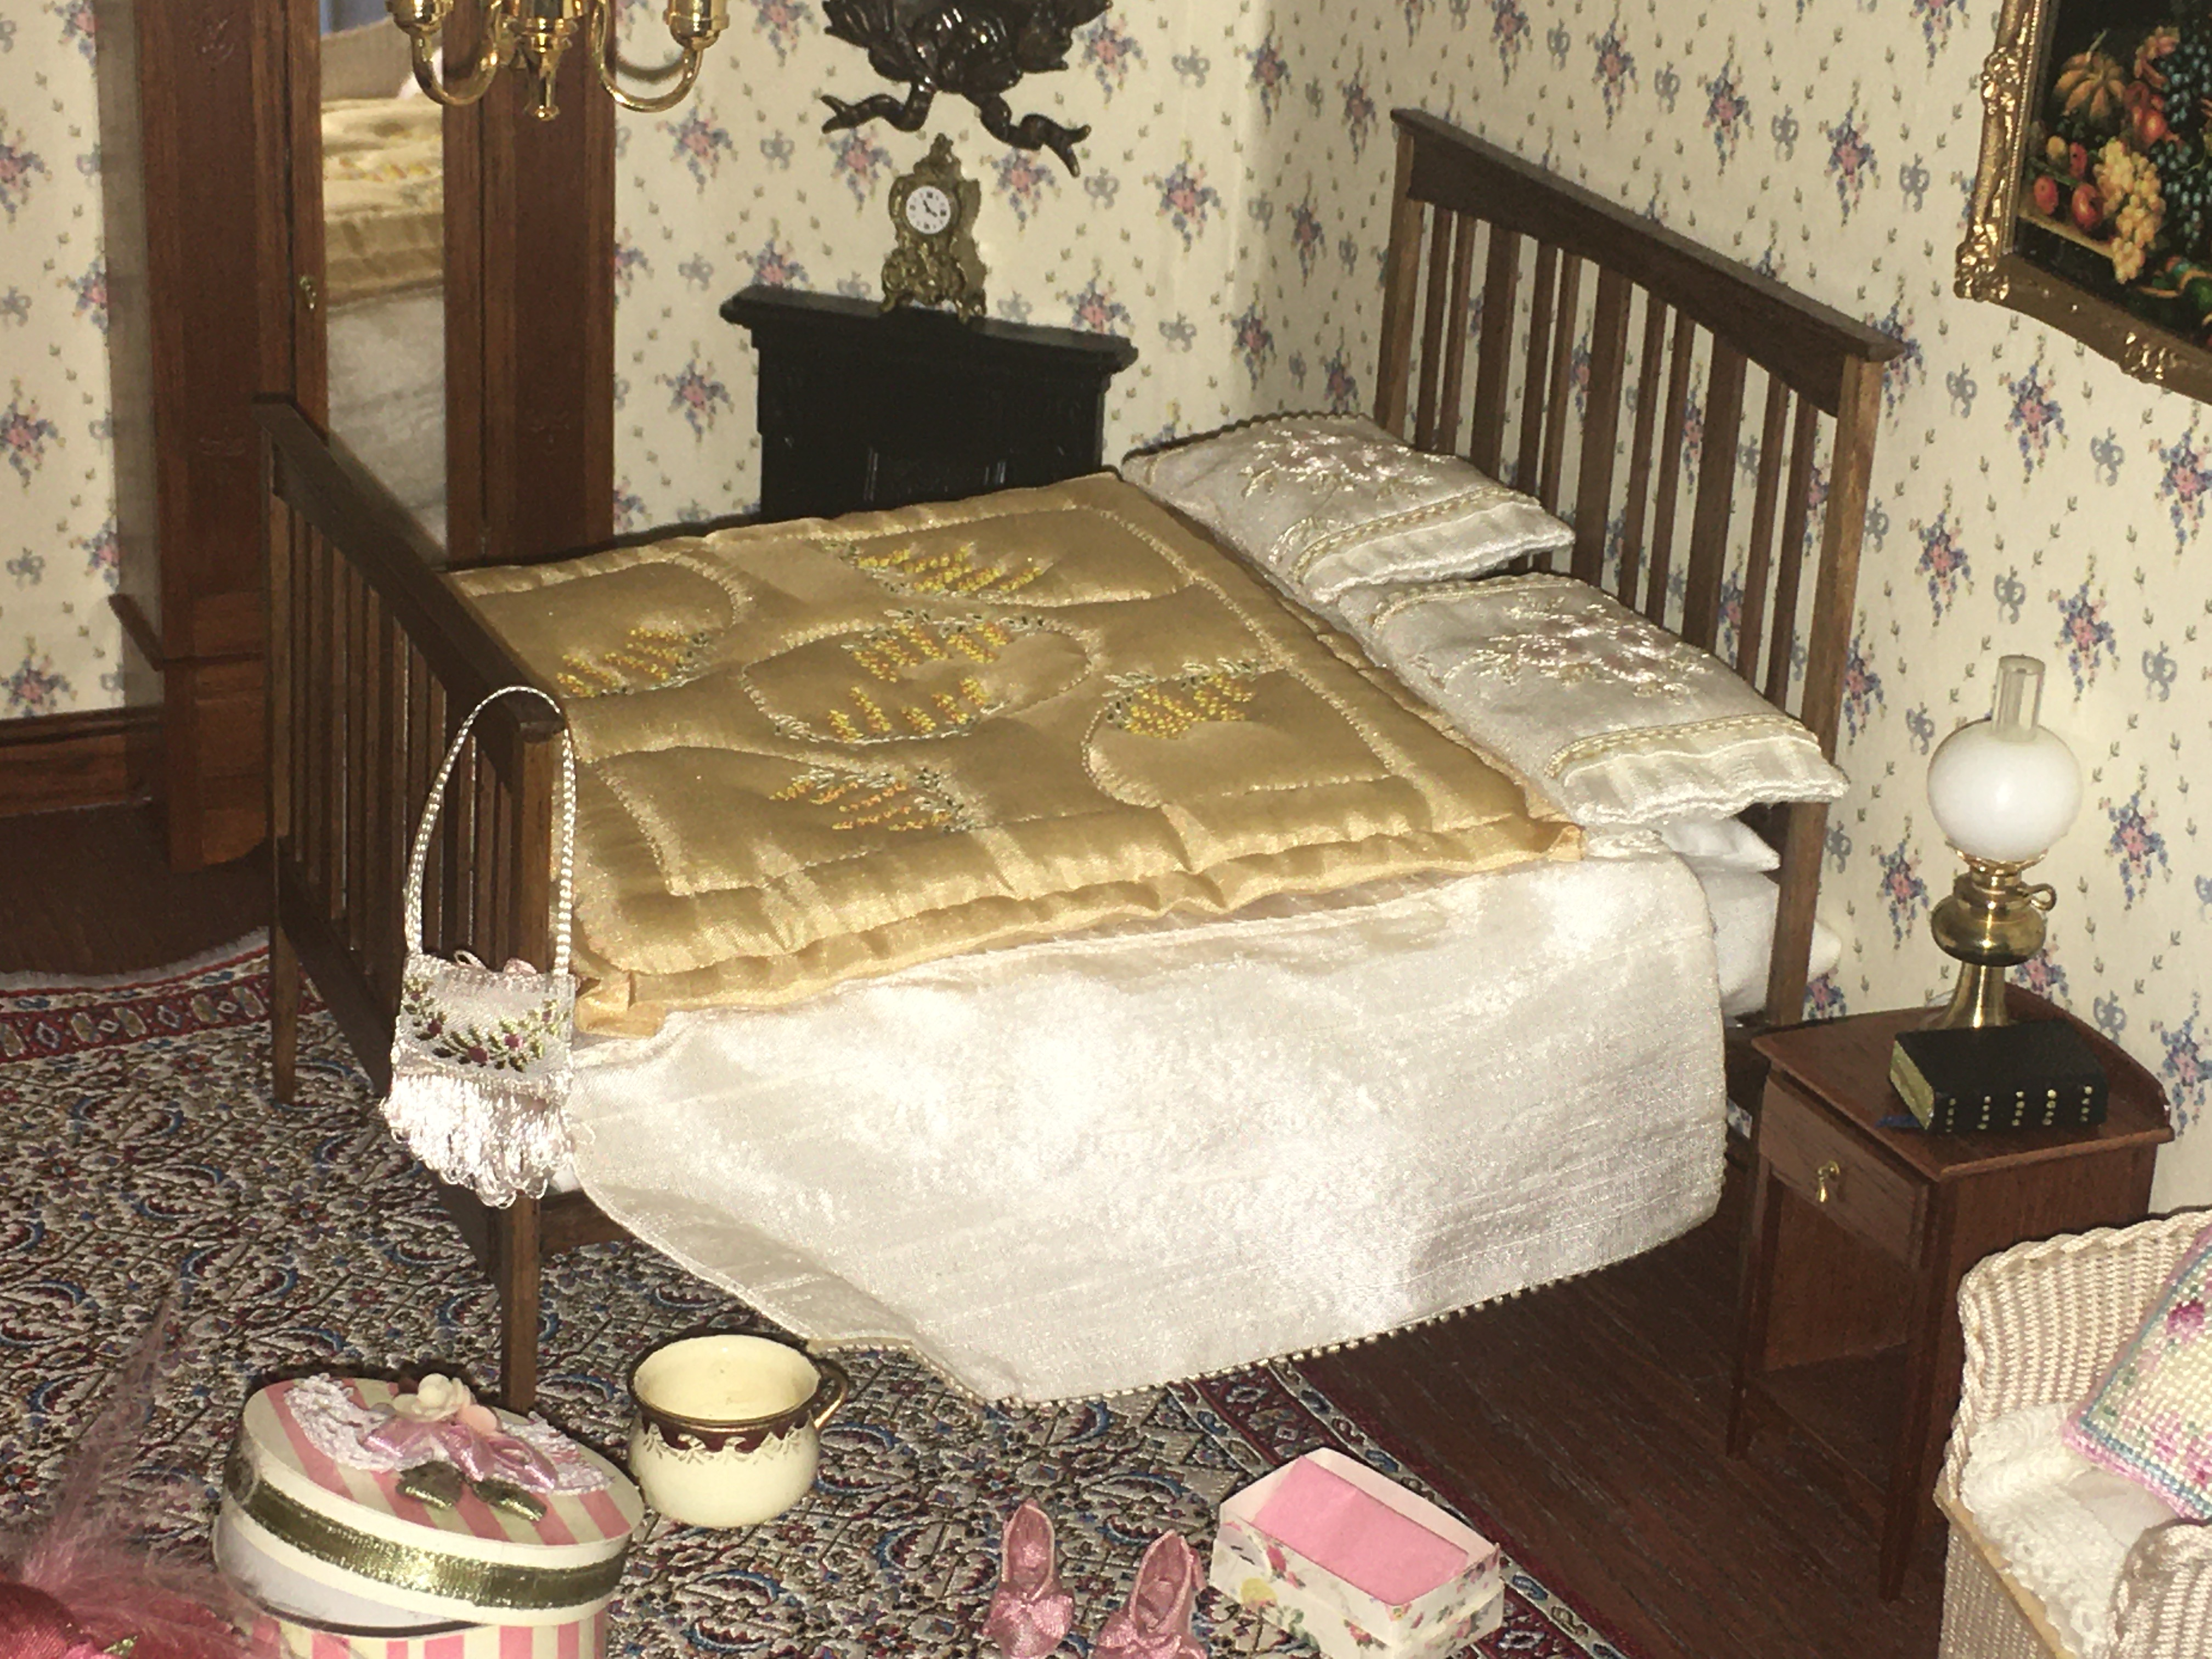 Edwardian Elegance bed with hand-stitched eiderdown by Brenda Brown.